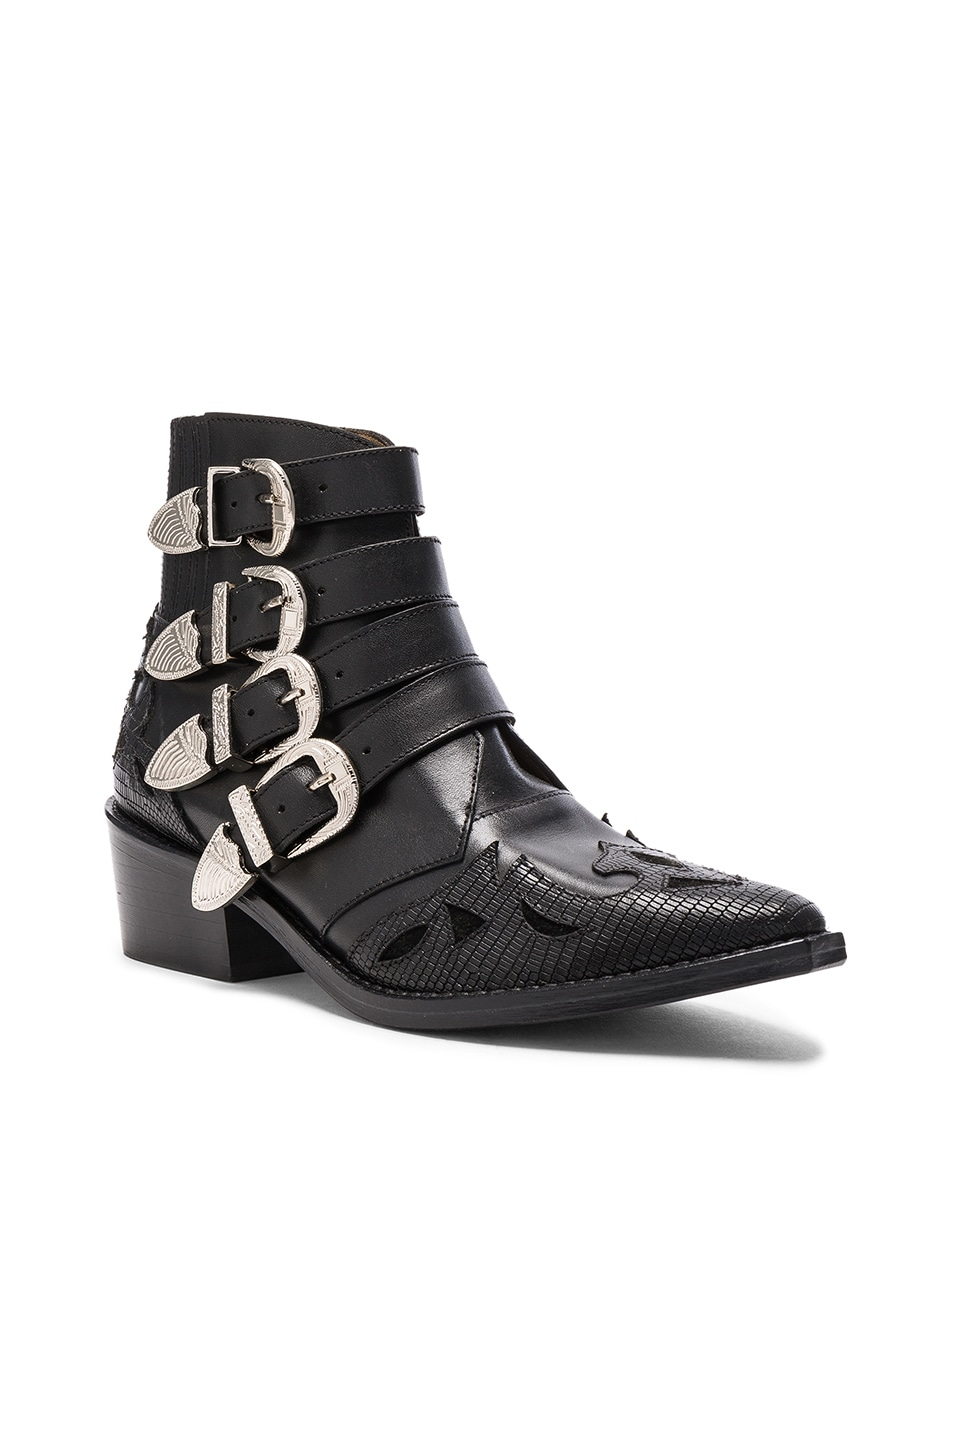 Image 2 of TOGA PULLA Leather Booties in Black Mix Leather